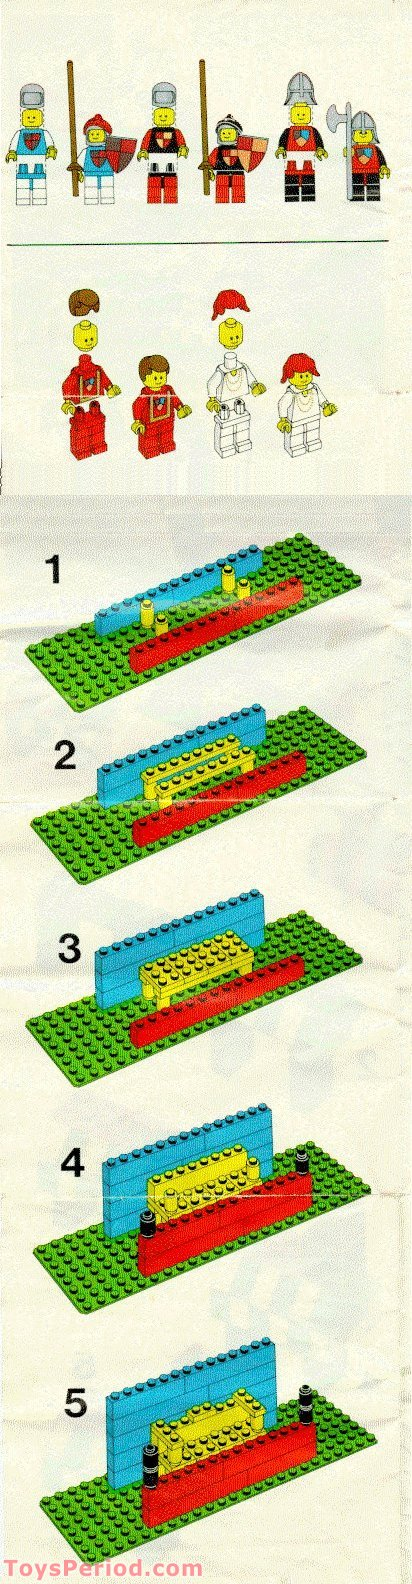 lego master builder academy instructions pdf